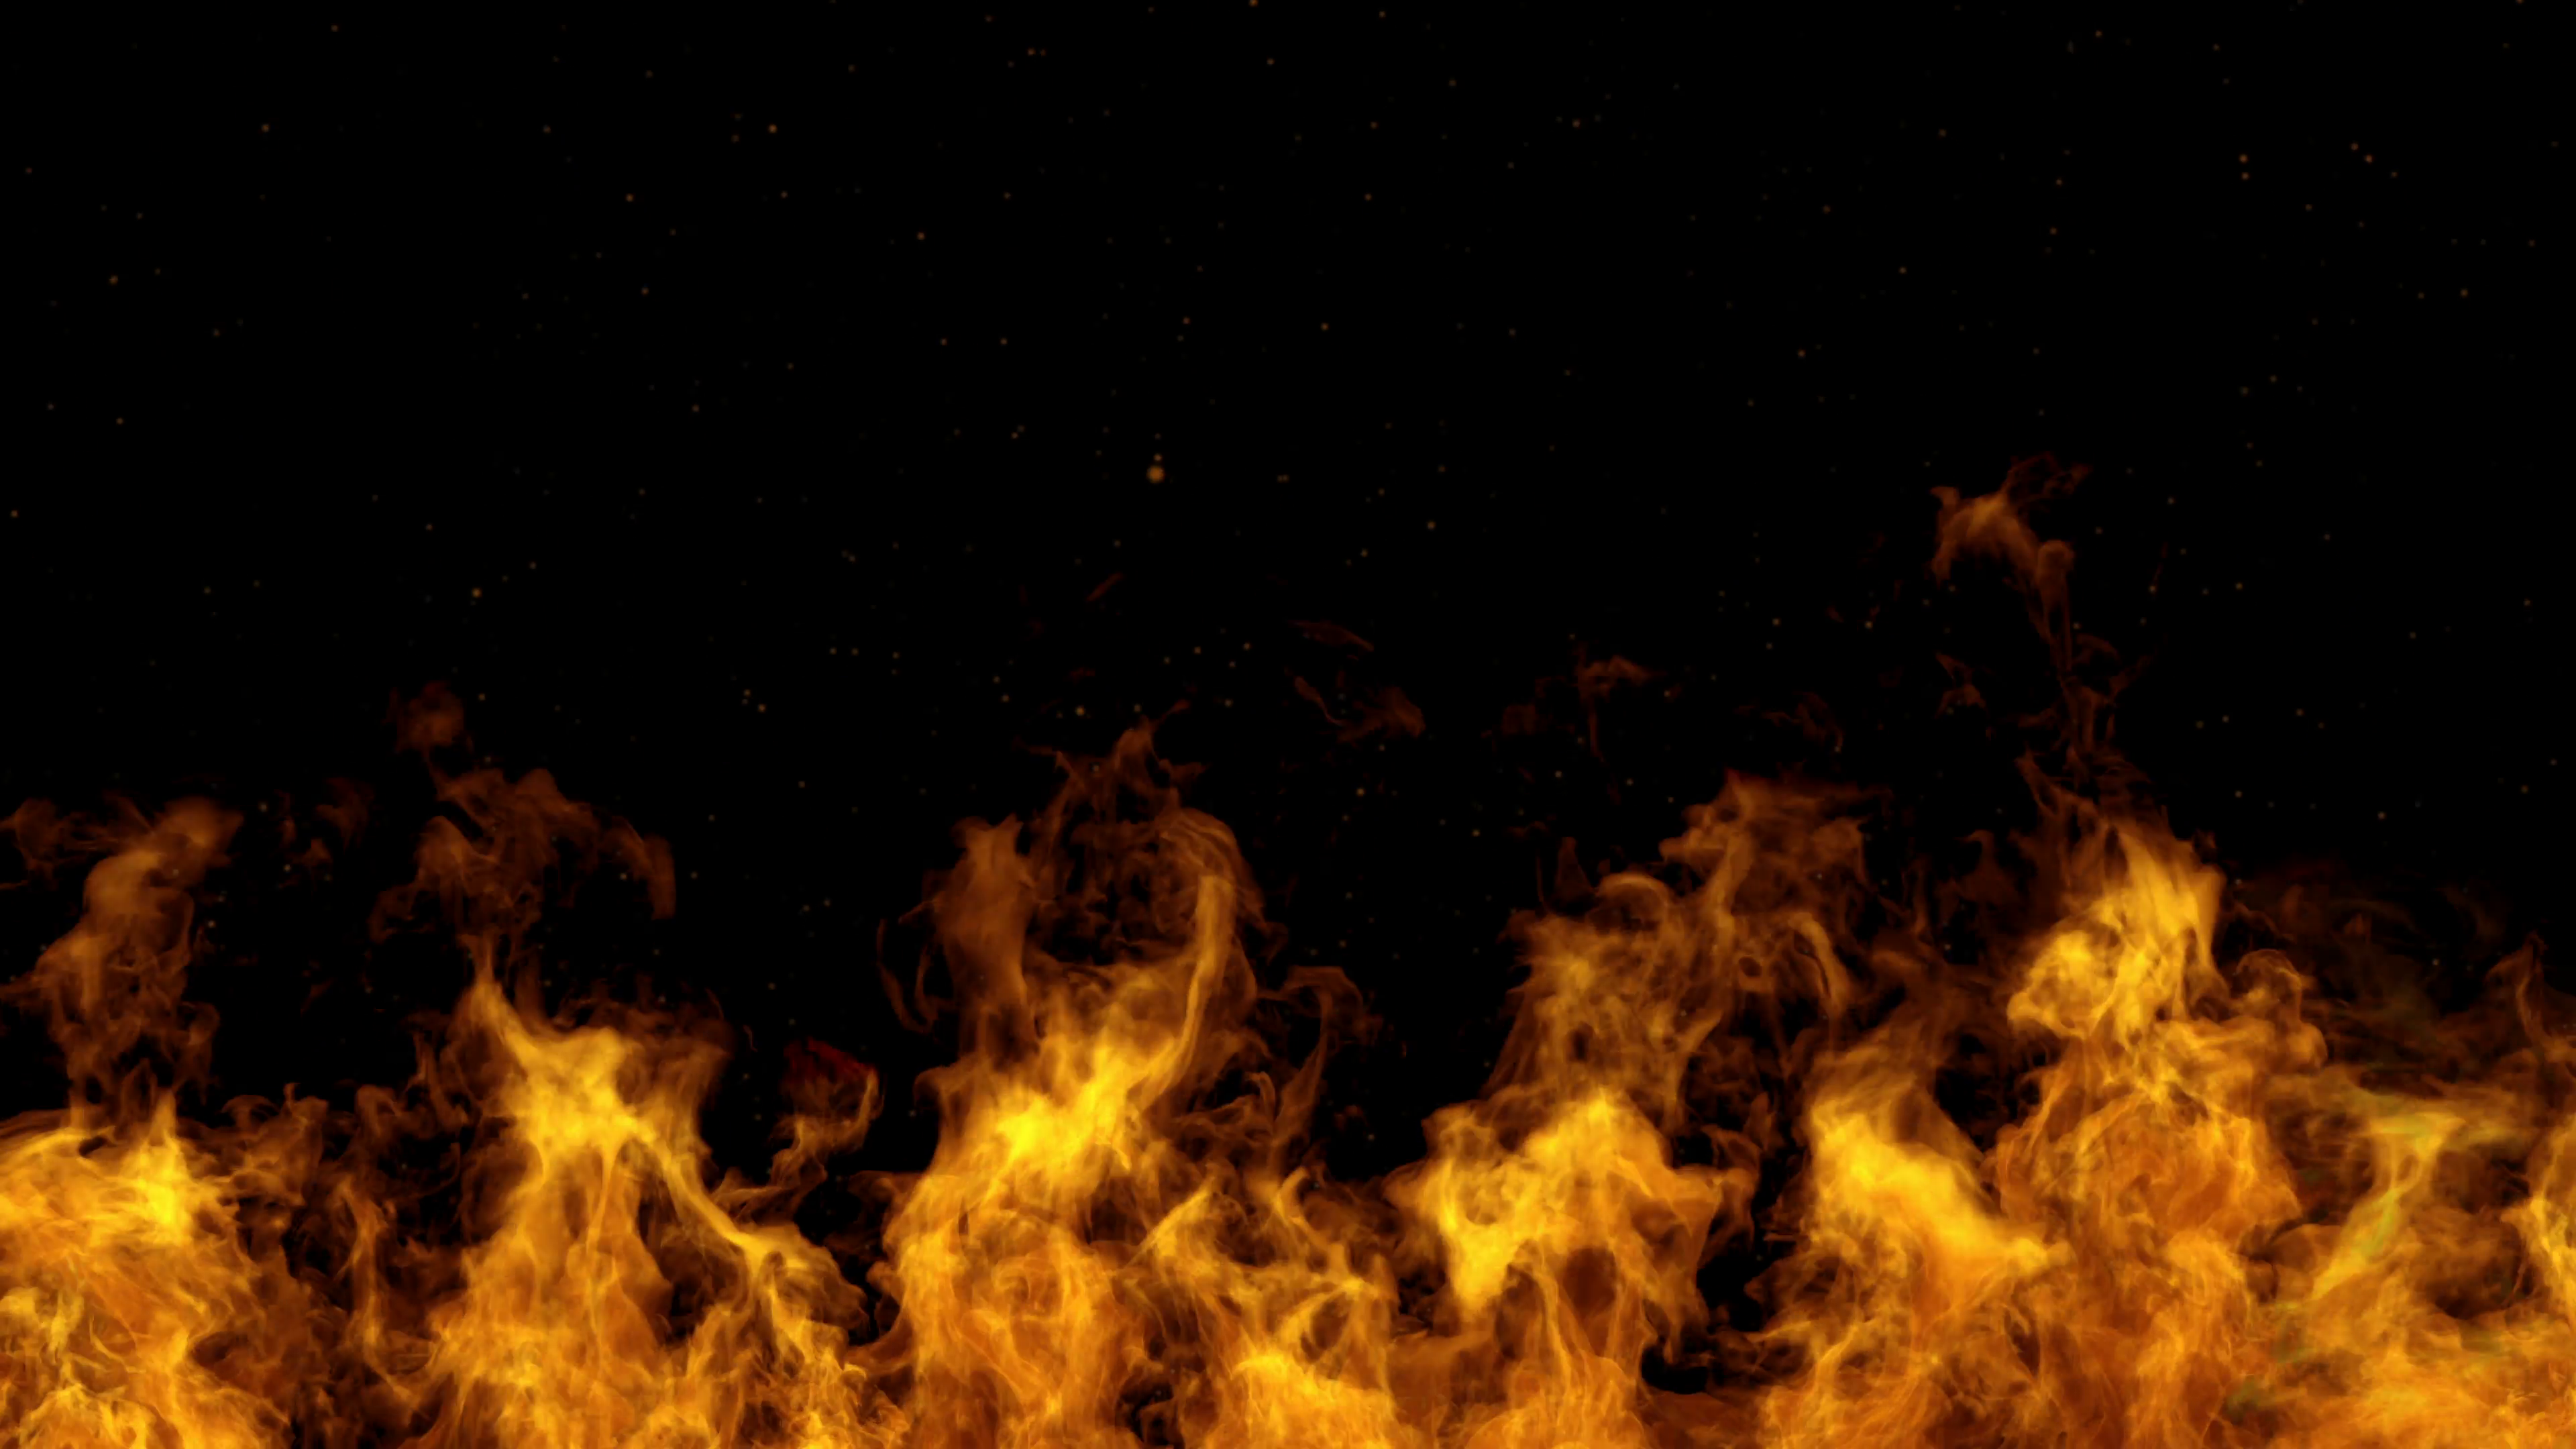 4K Detailed fire background seamless loop ultra Hd slow motion 3840x2160